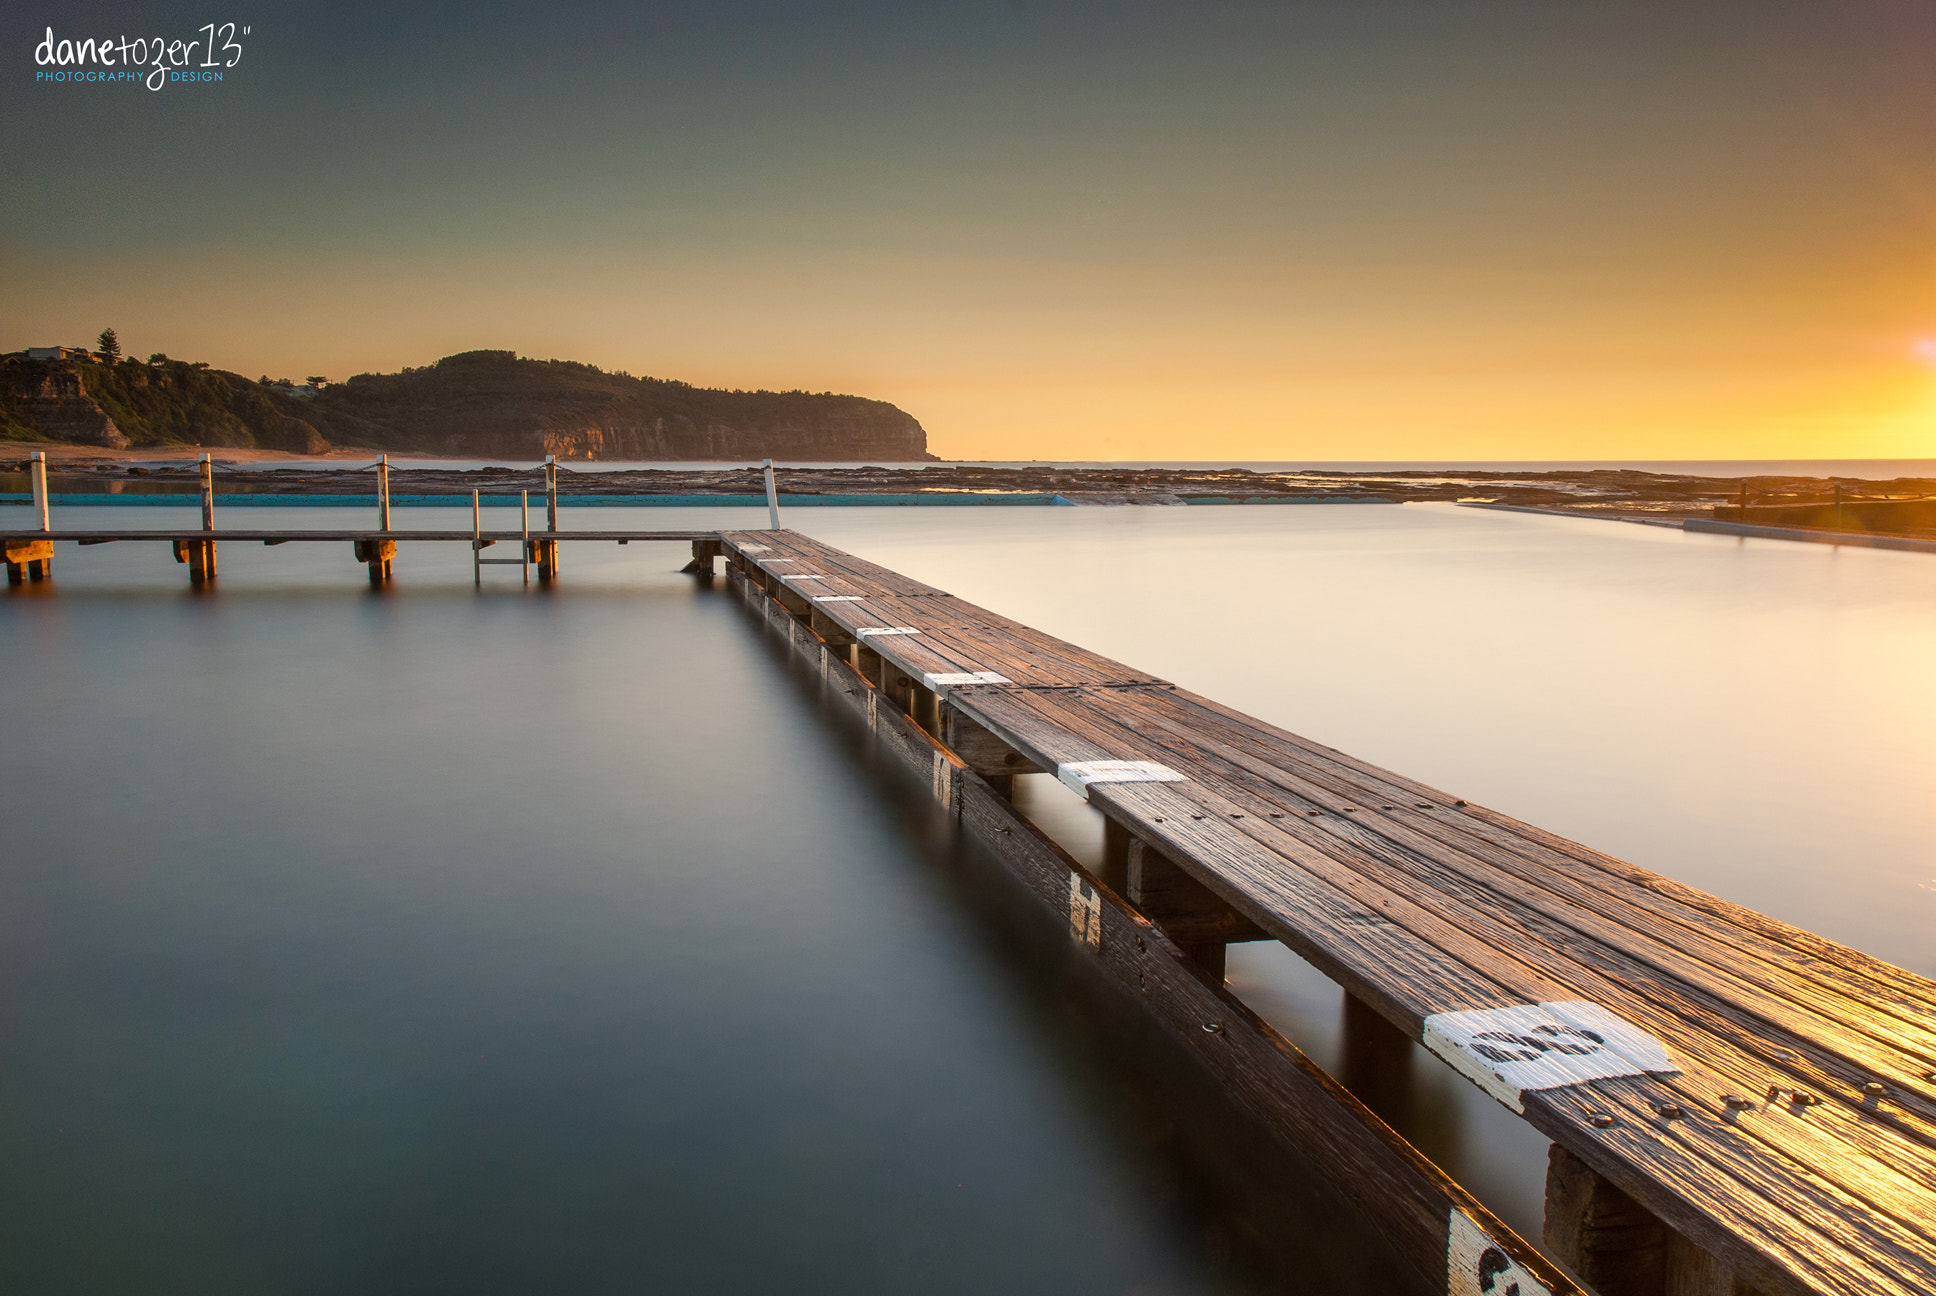 Photograph Calming pool by Dane Tozer on 500px